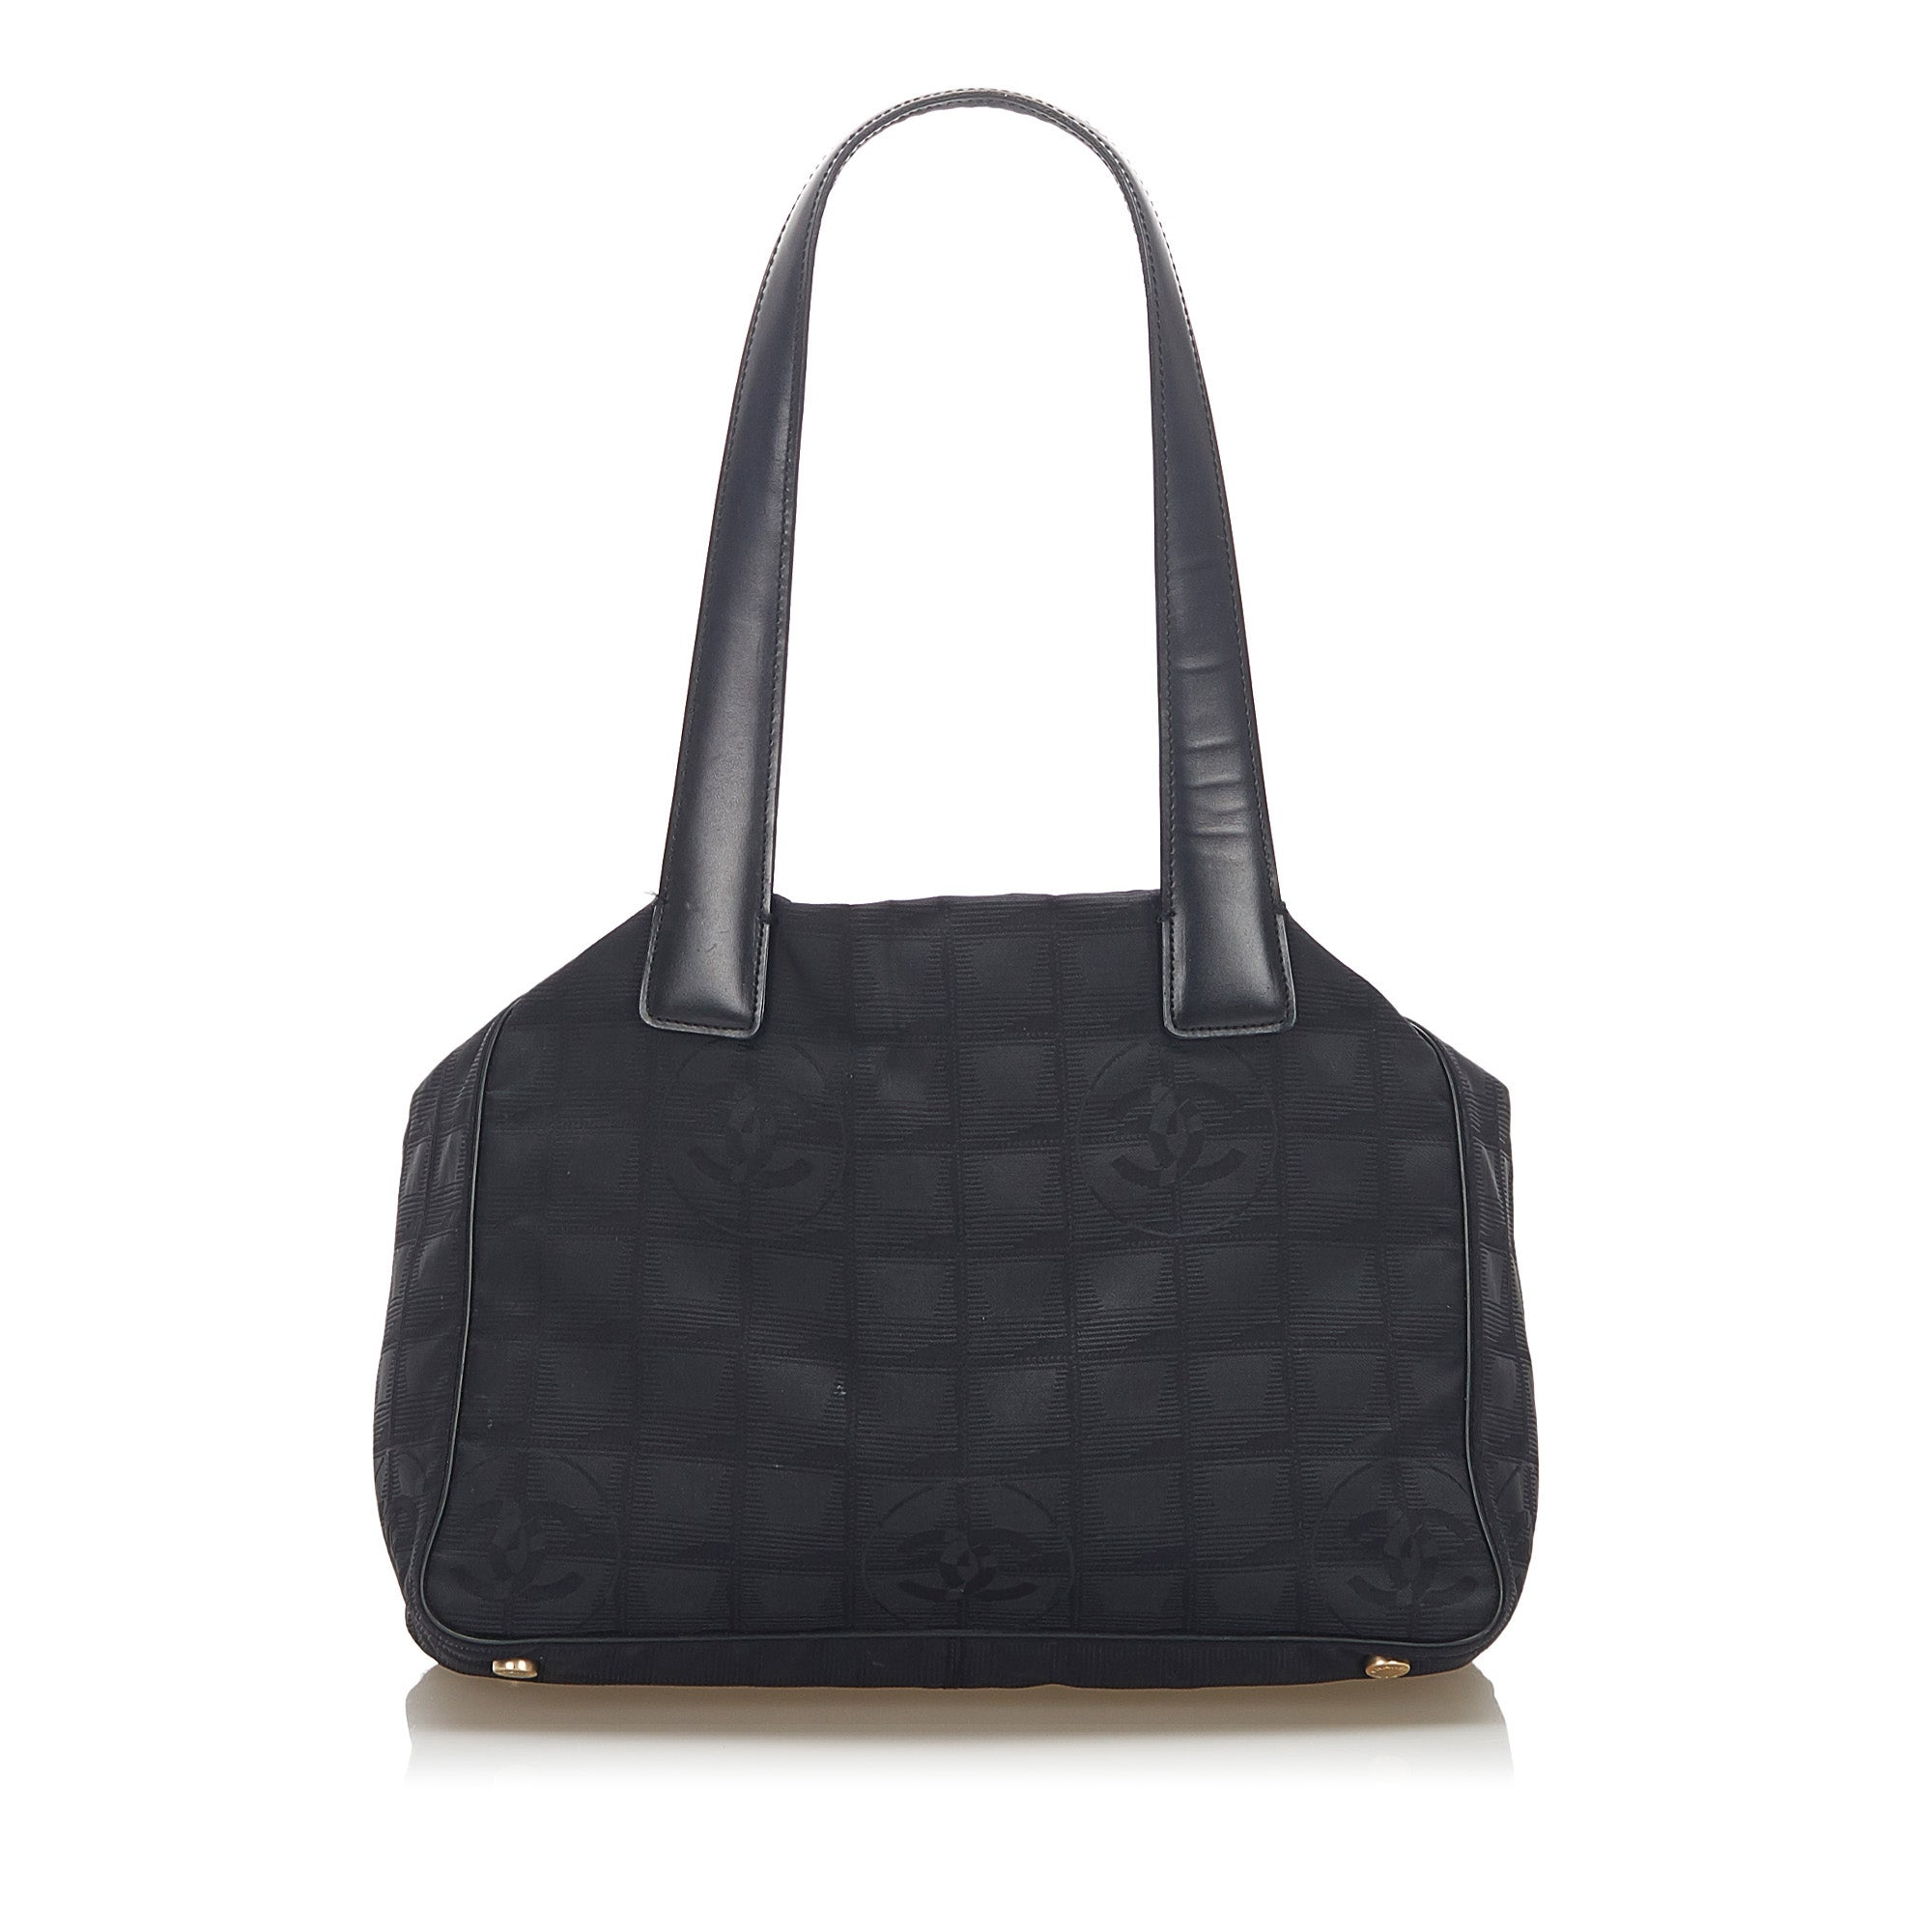 Chanel Black New Travel Line Canvas Tote Bag